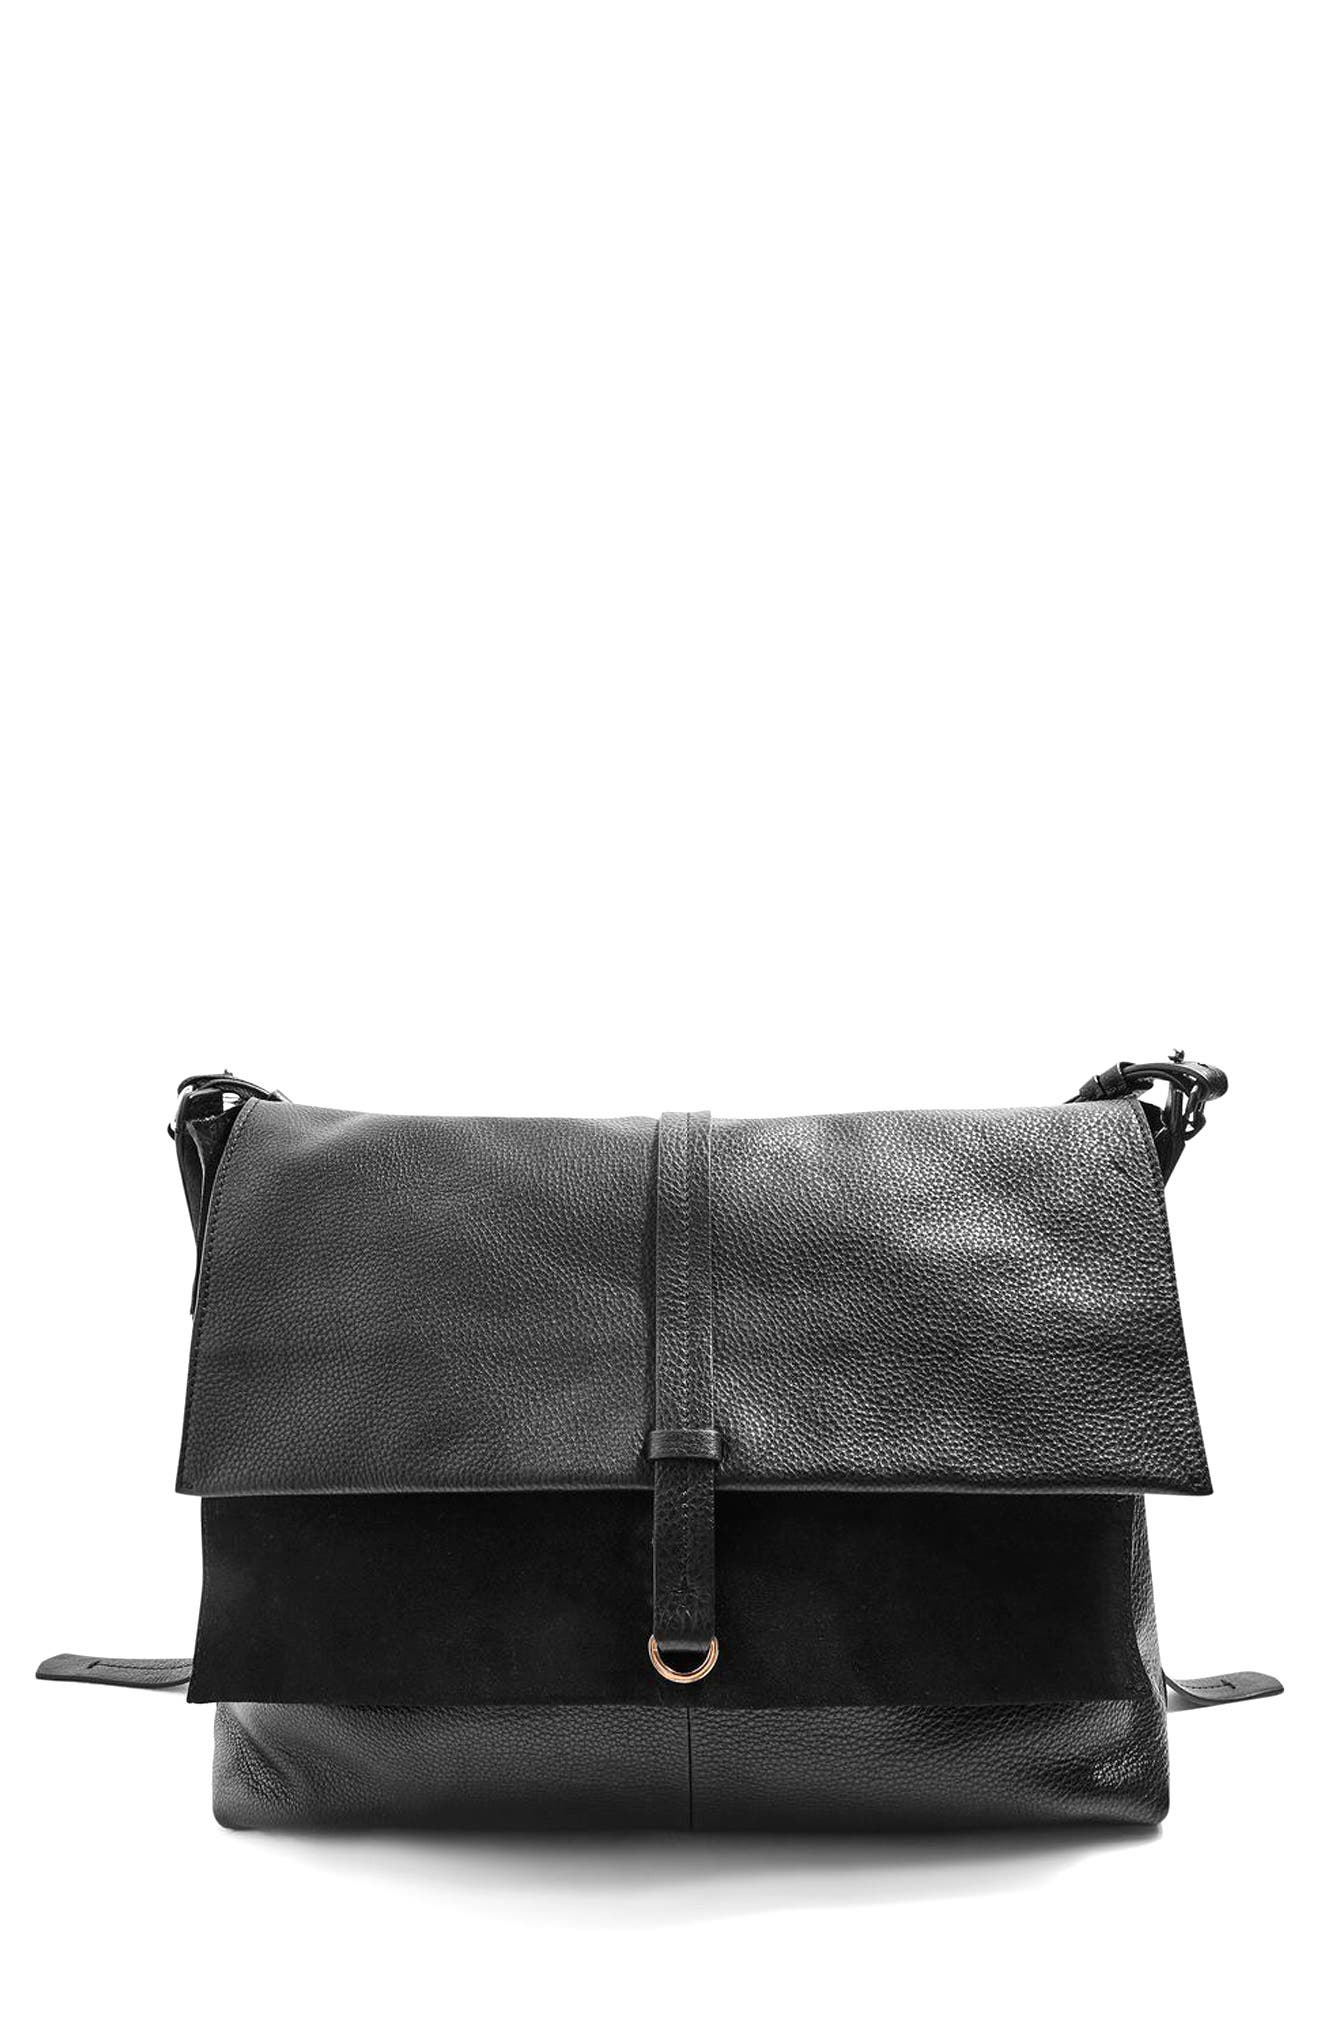 TOPSHOP Leather Hobo Bag